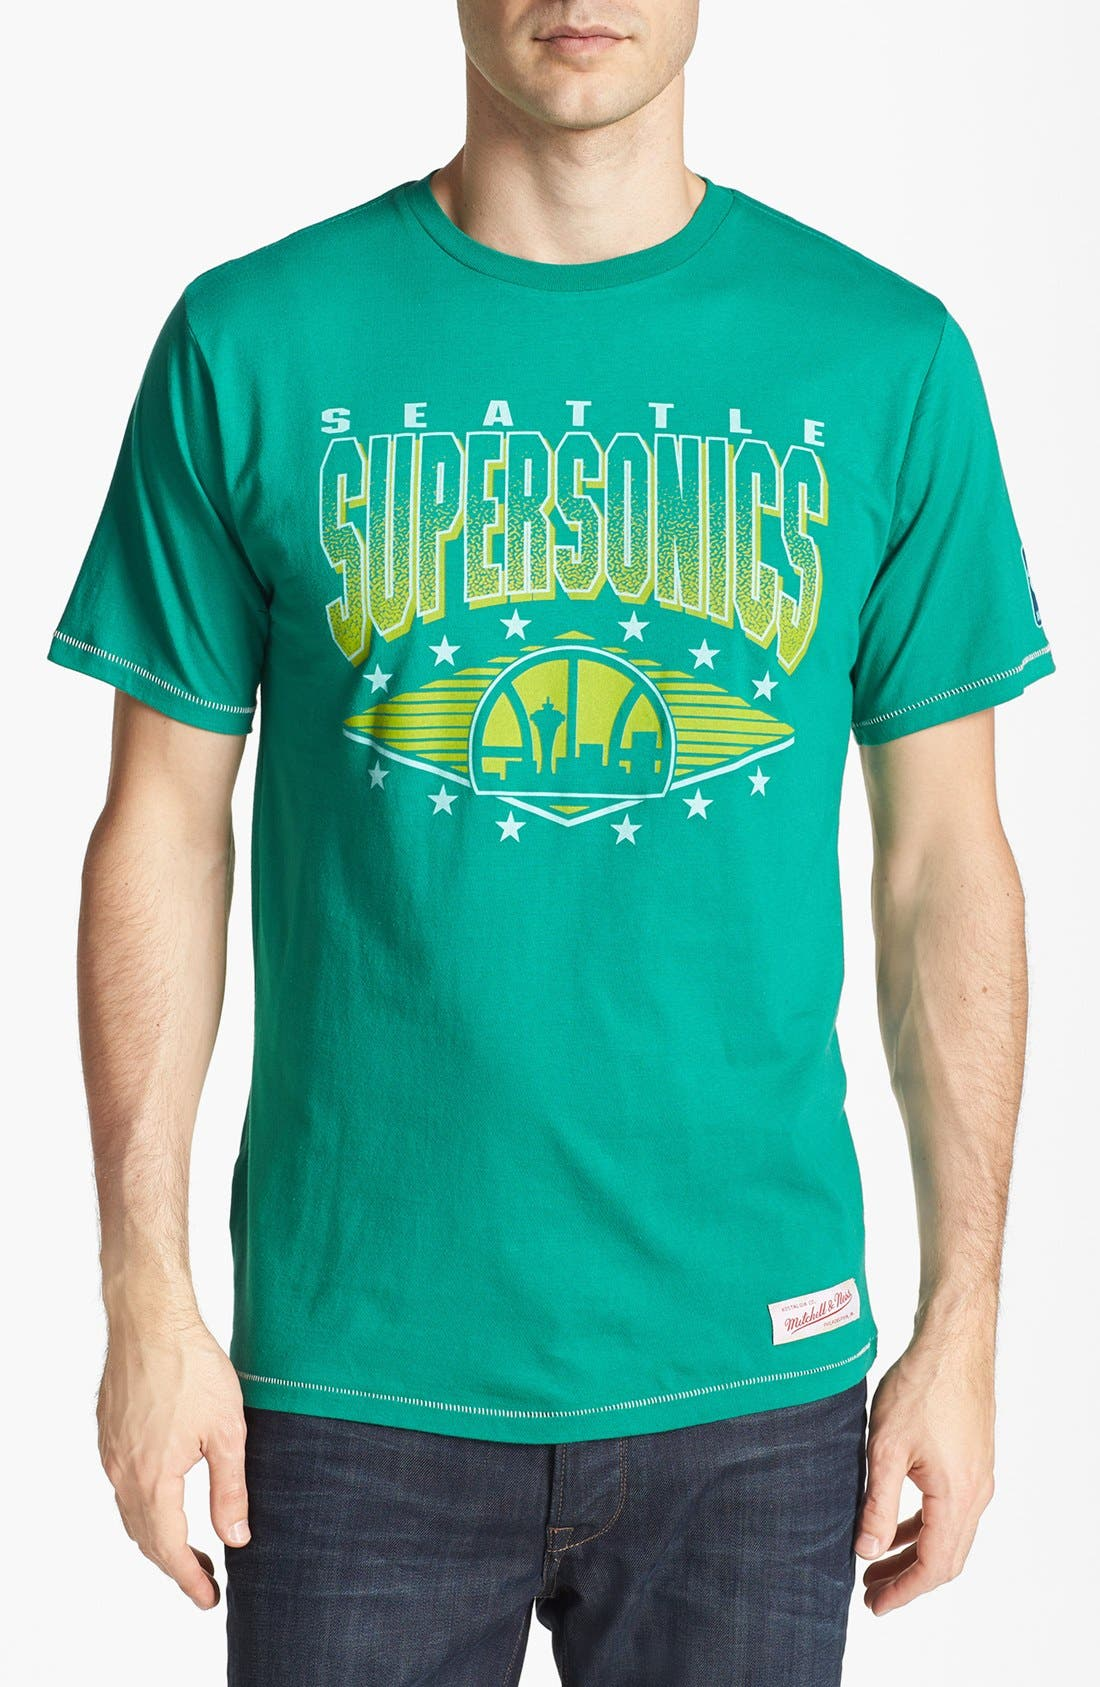 'Seattle Supersonics' T-Shirt,                             Main thumbnail 1, color,                             Kelly Green